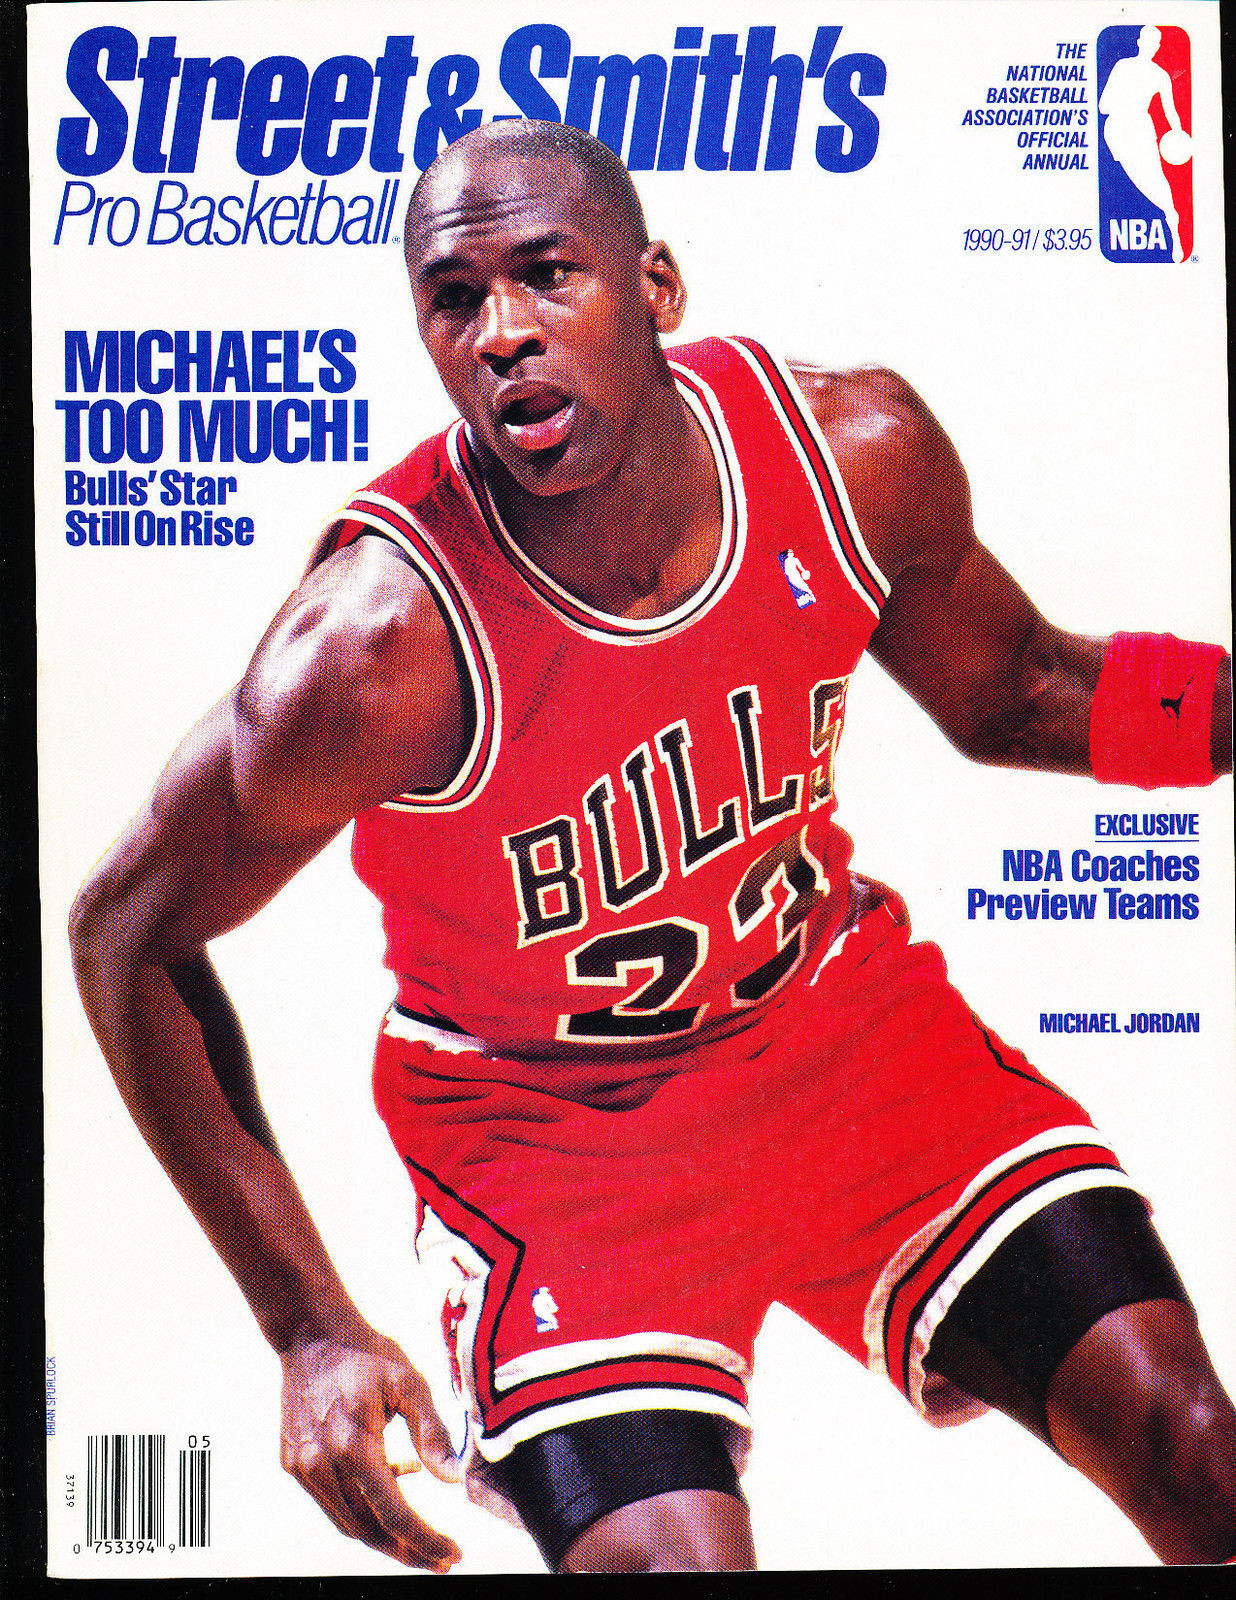 1990 Street Smith Pro Basketball yearbook Guide Michael Jordan chicago Bulls